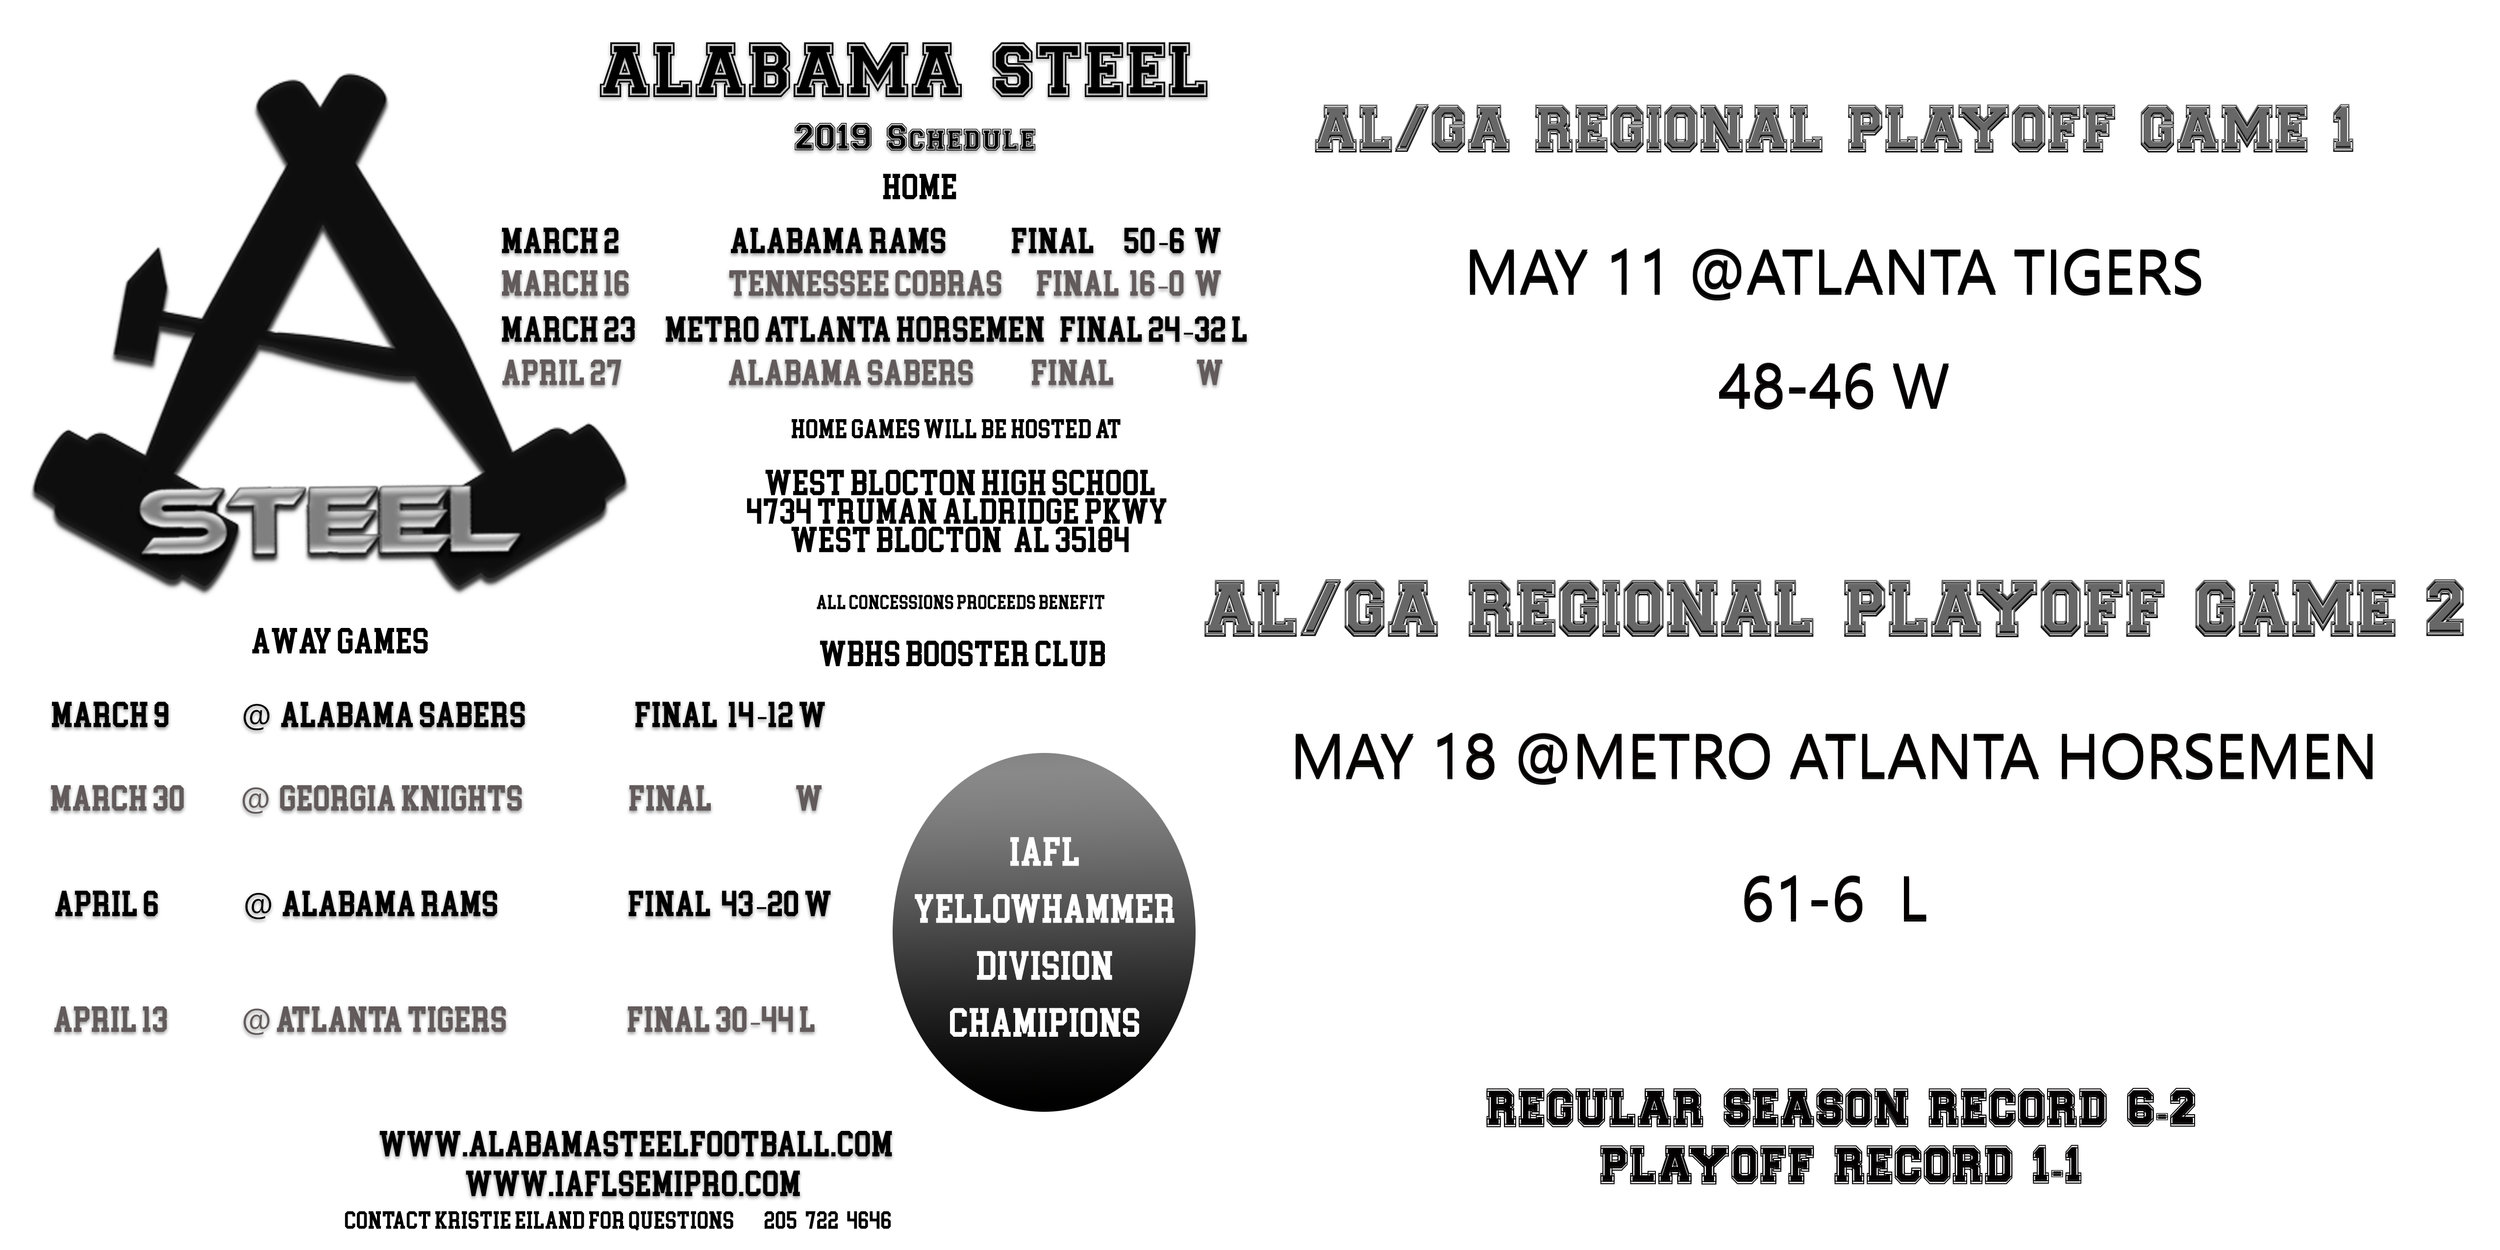 ALABAMA STEEL 2019 SCHEDULE  with post season record.jpg